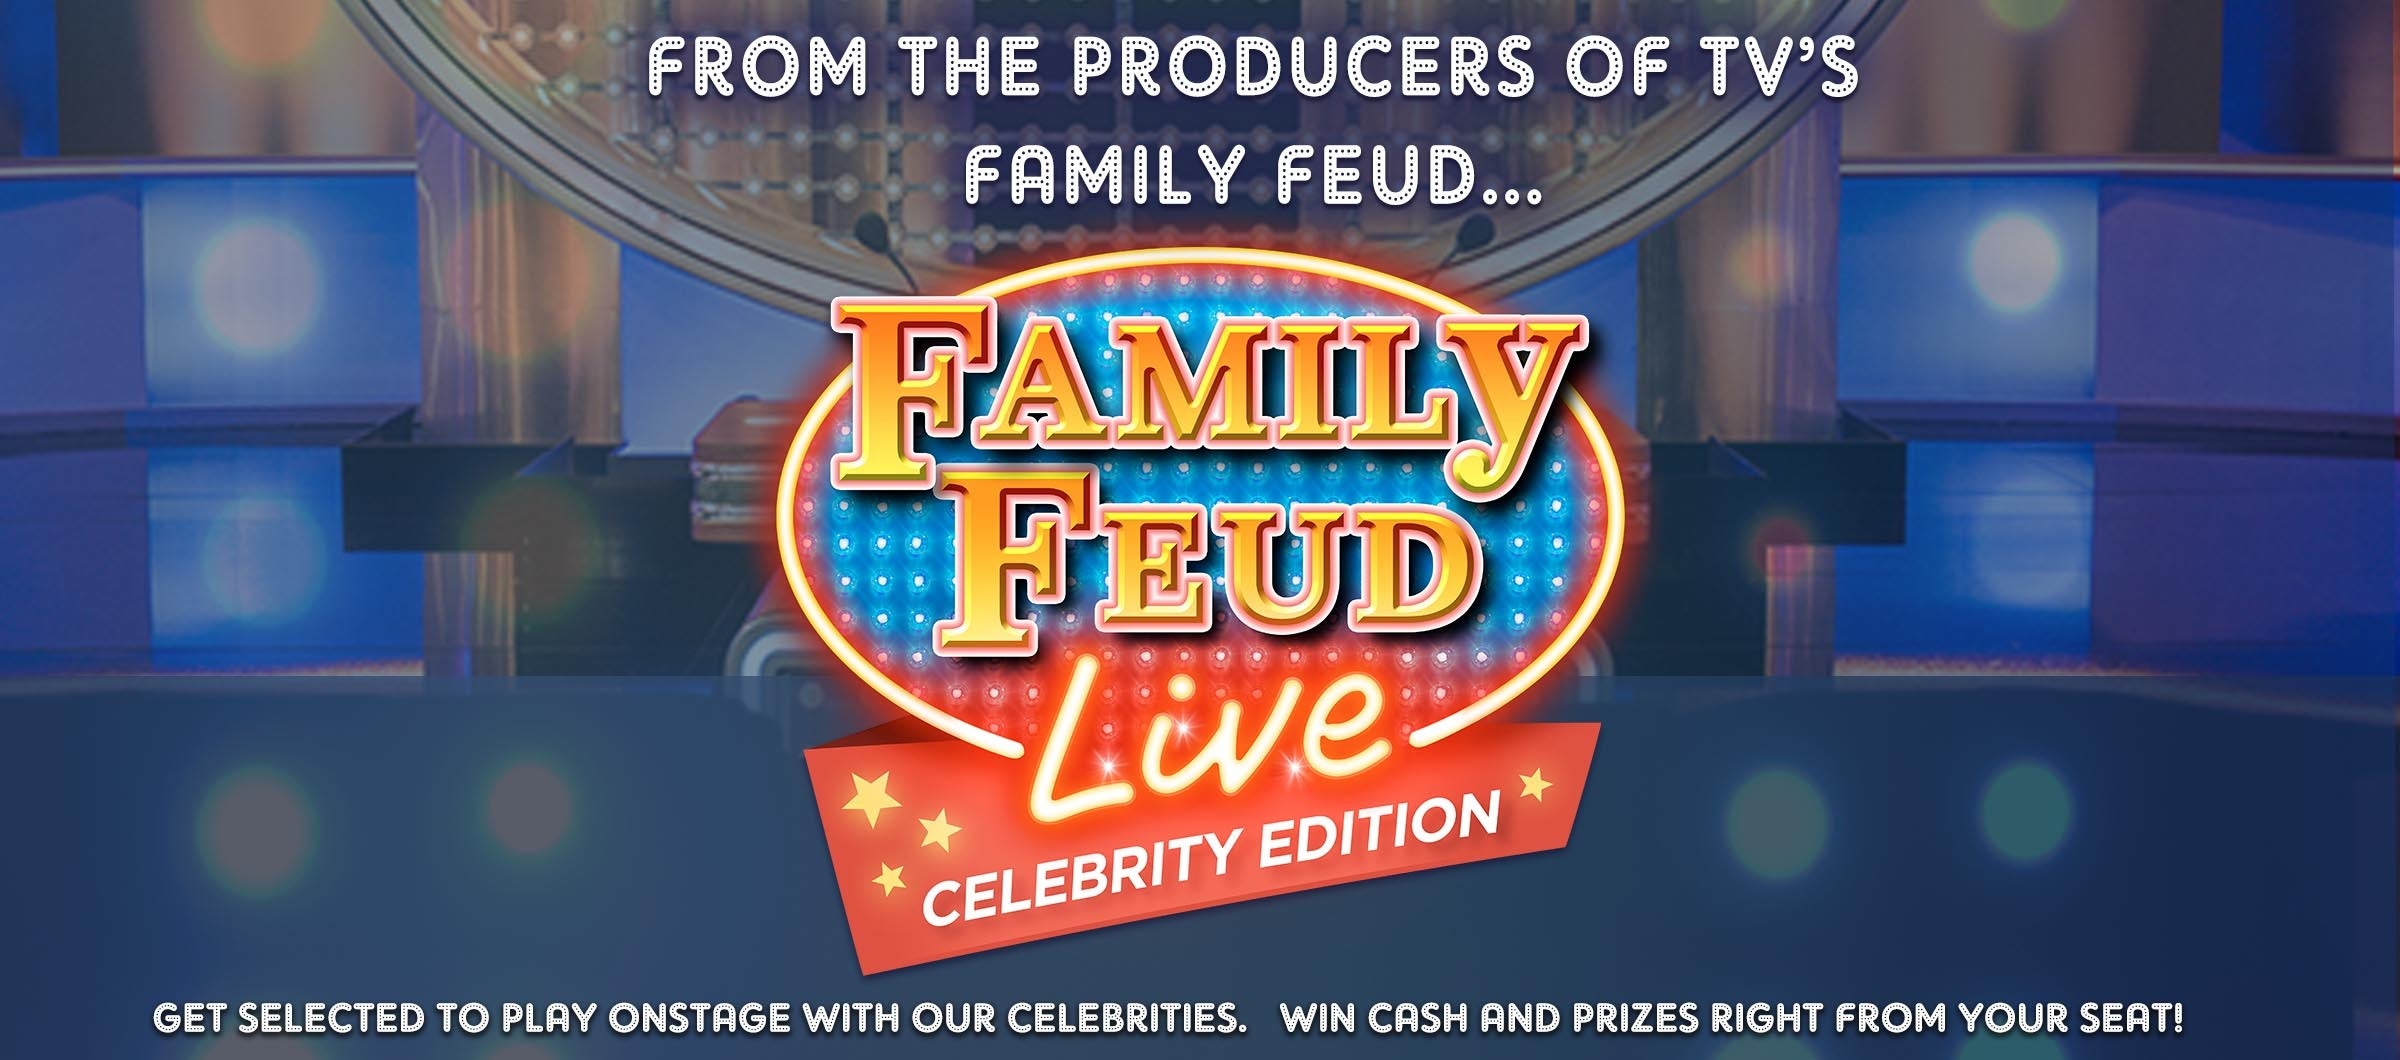 Family Feud Live!